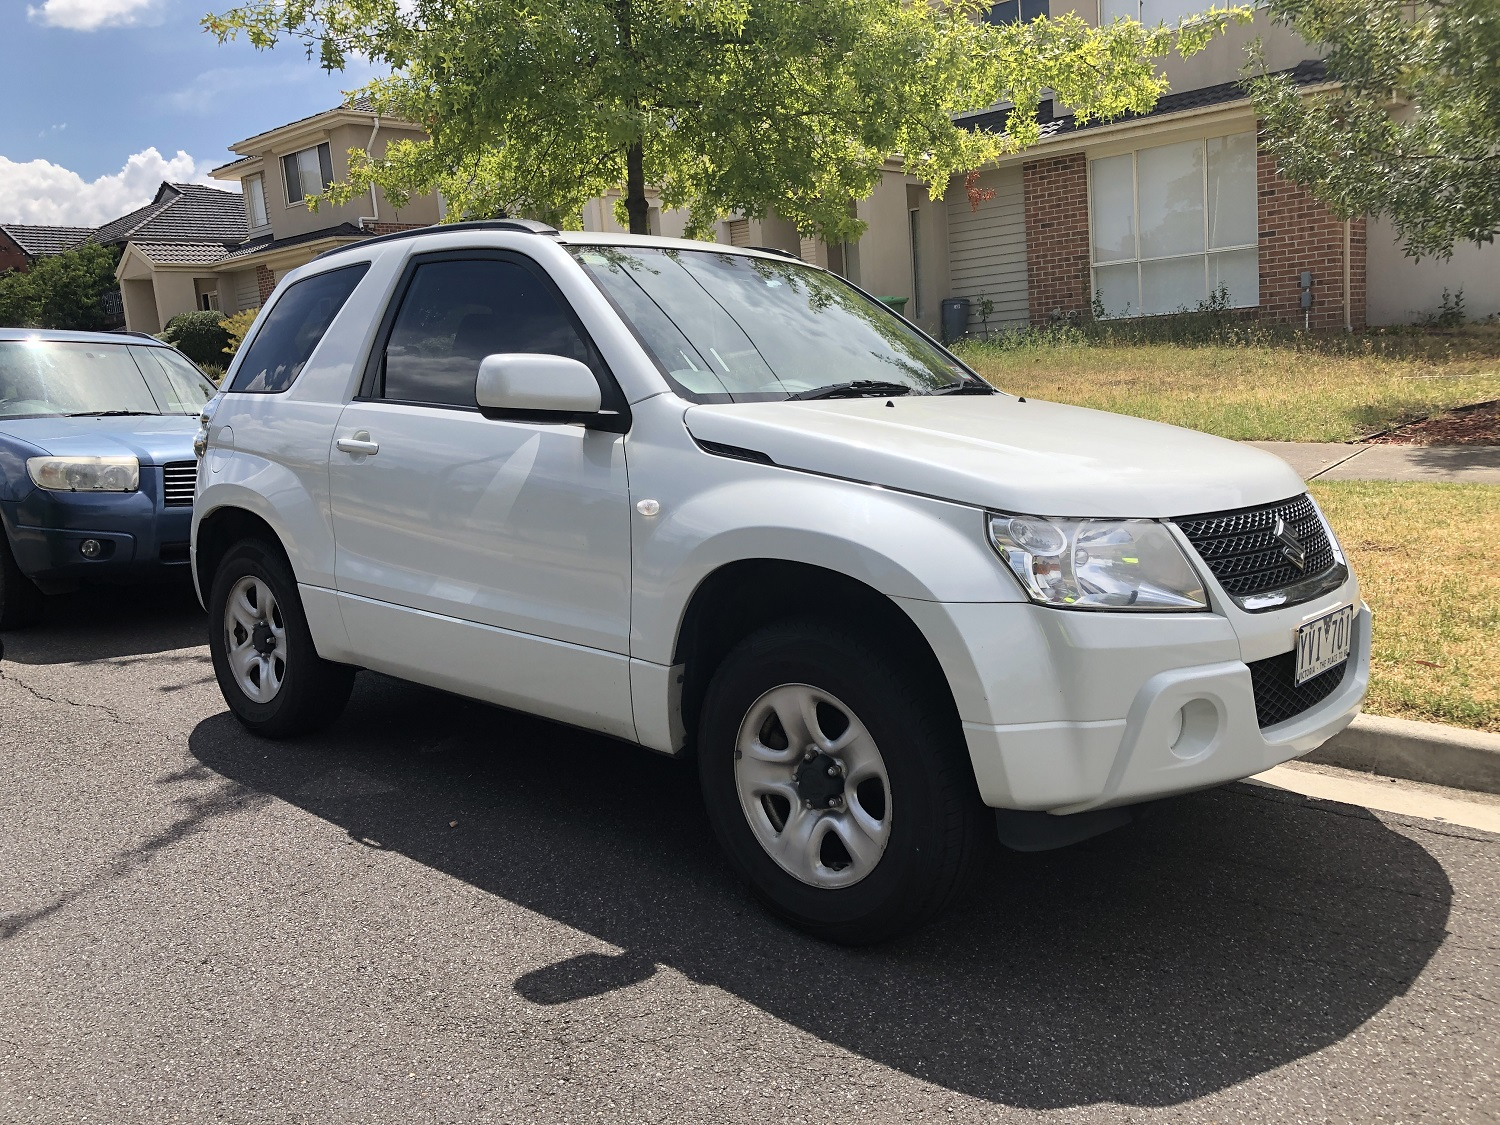 Picture of Cathy's 2012 Suzuki Grand Vitara